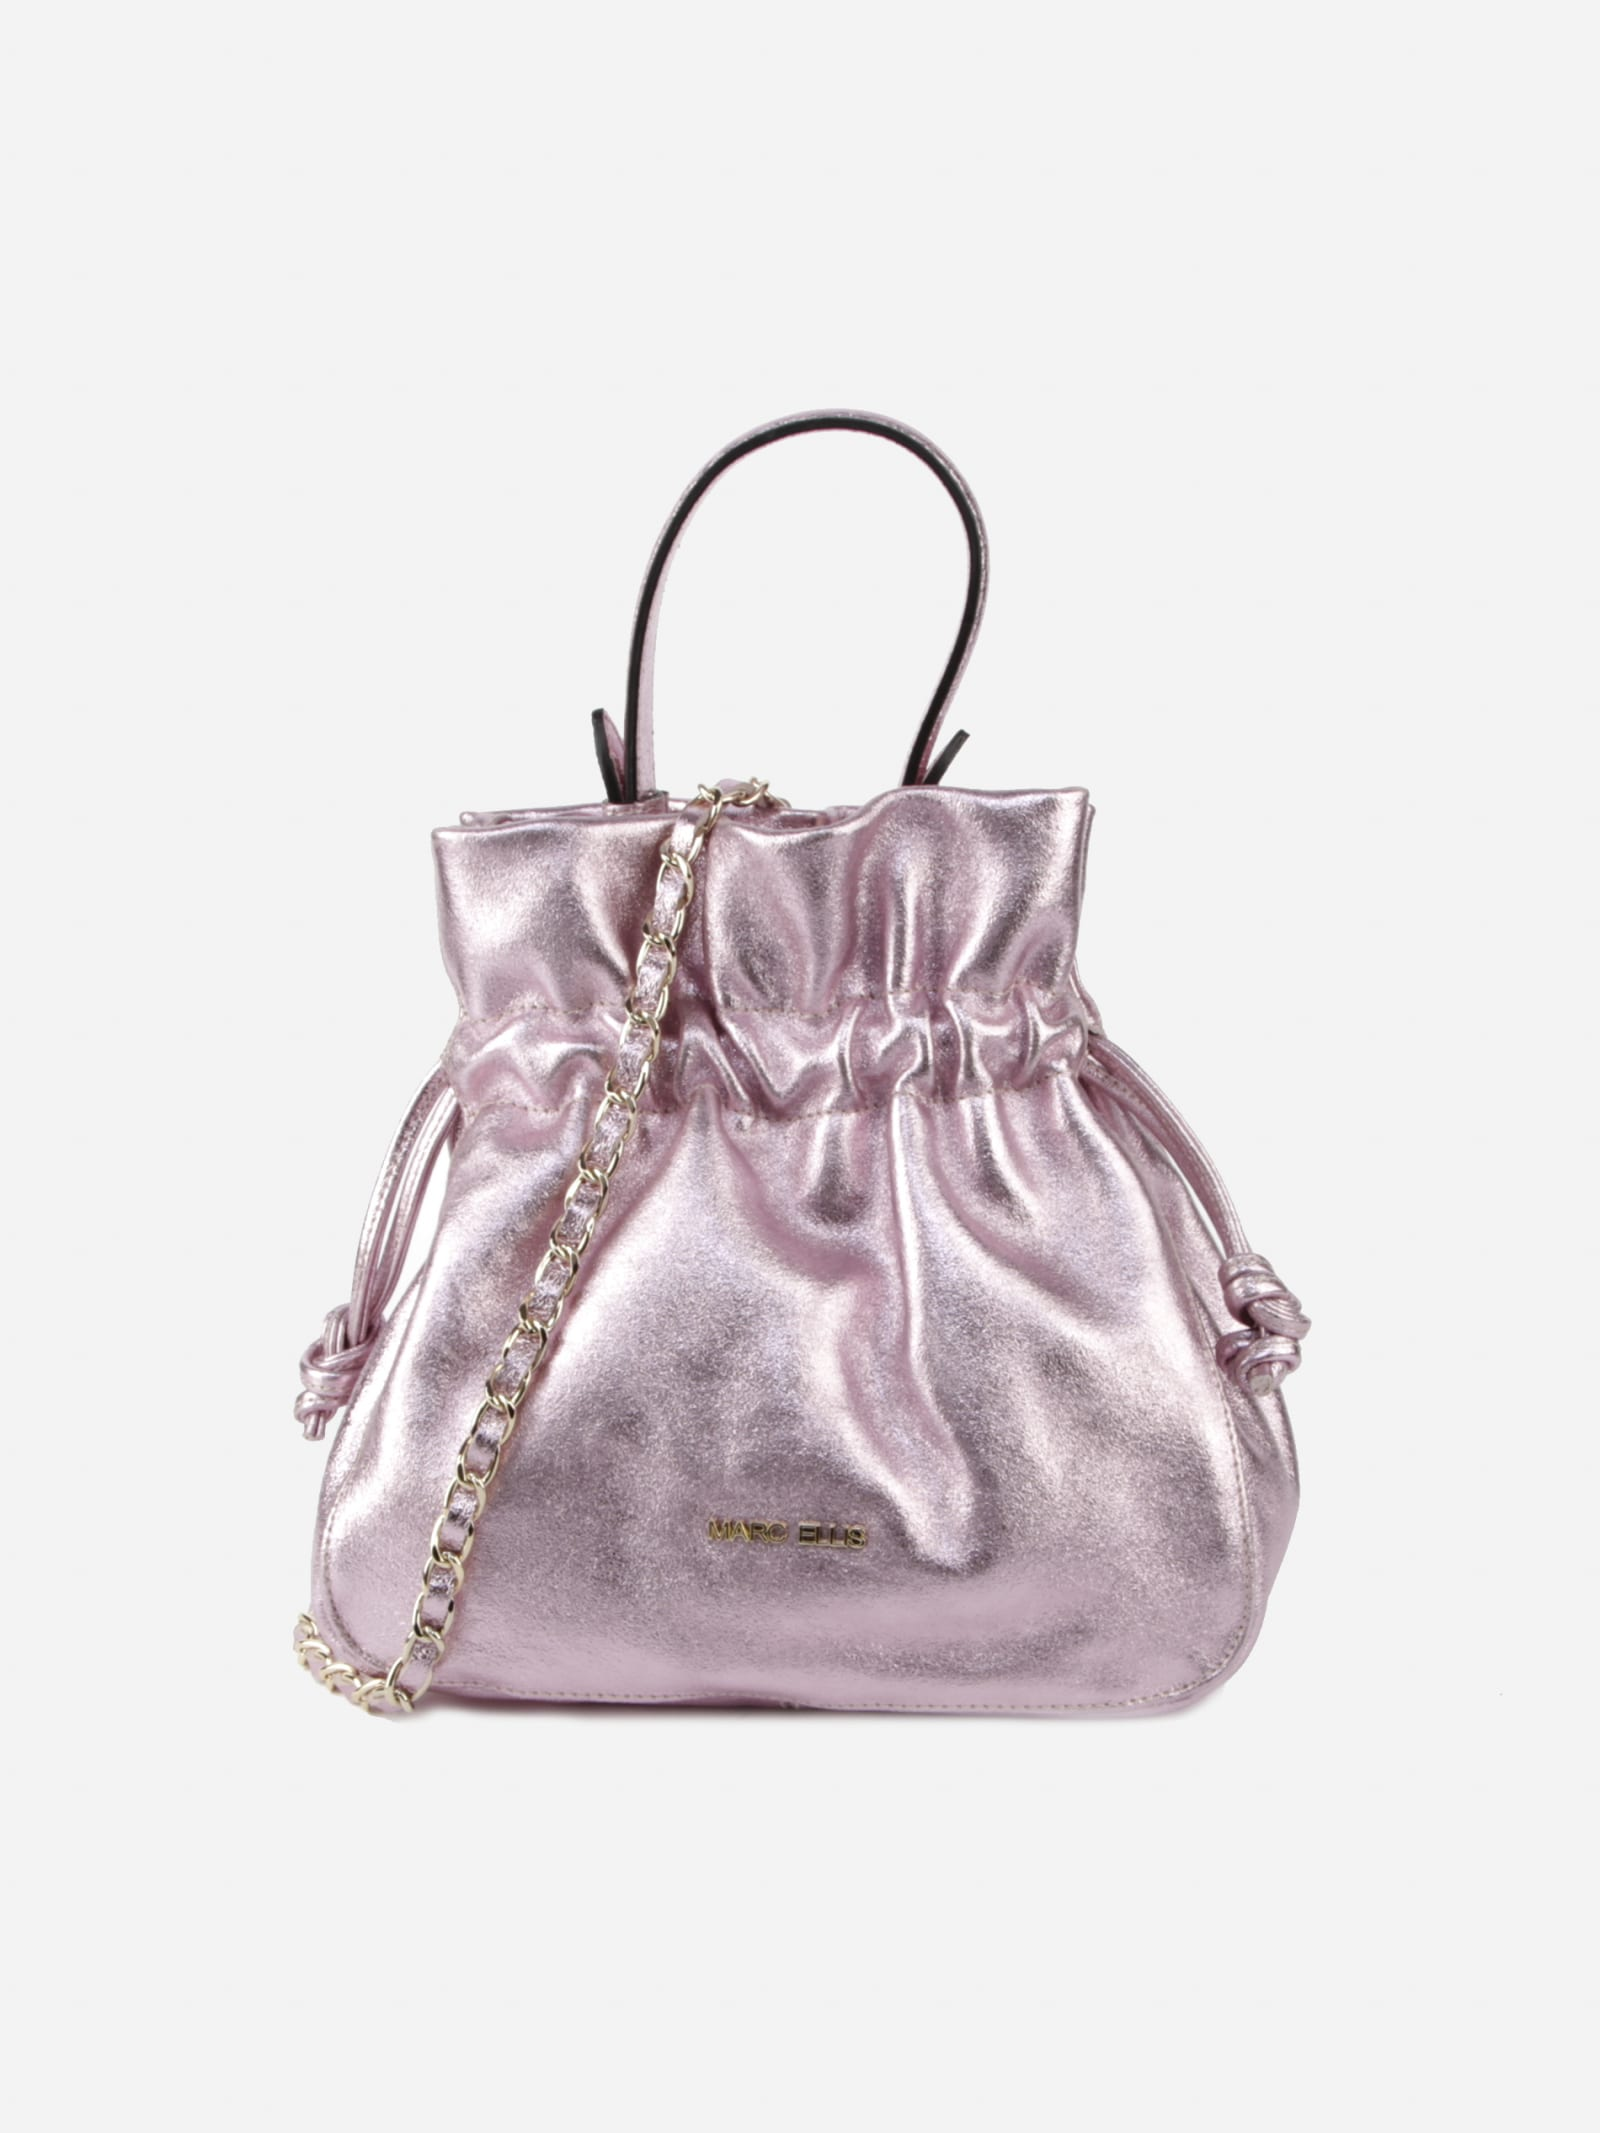 Concy Piper Handbag In Laminated Leather